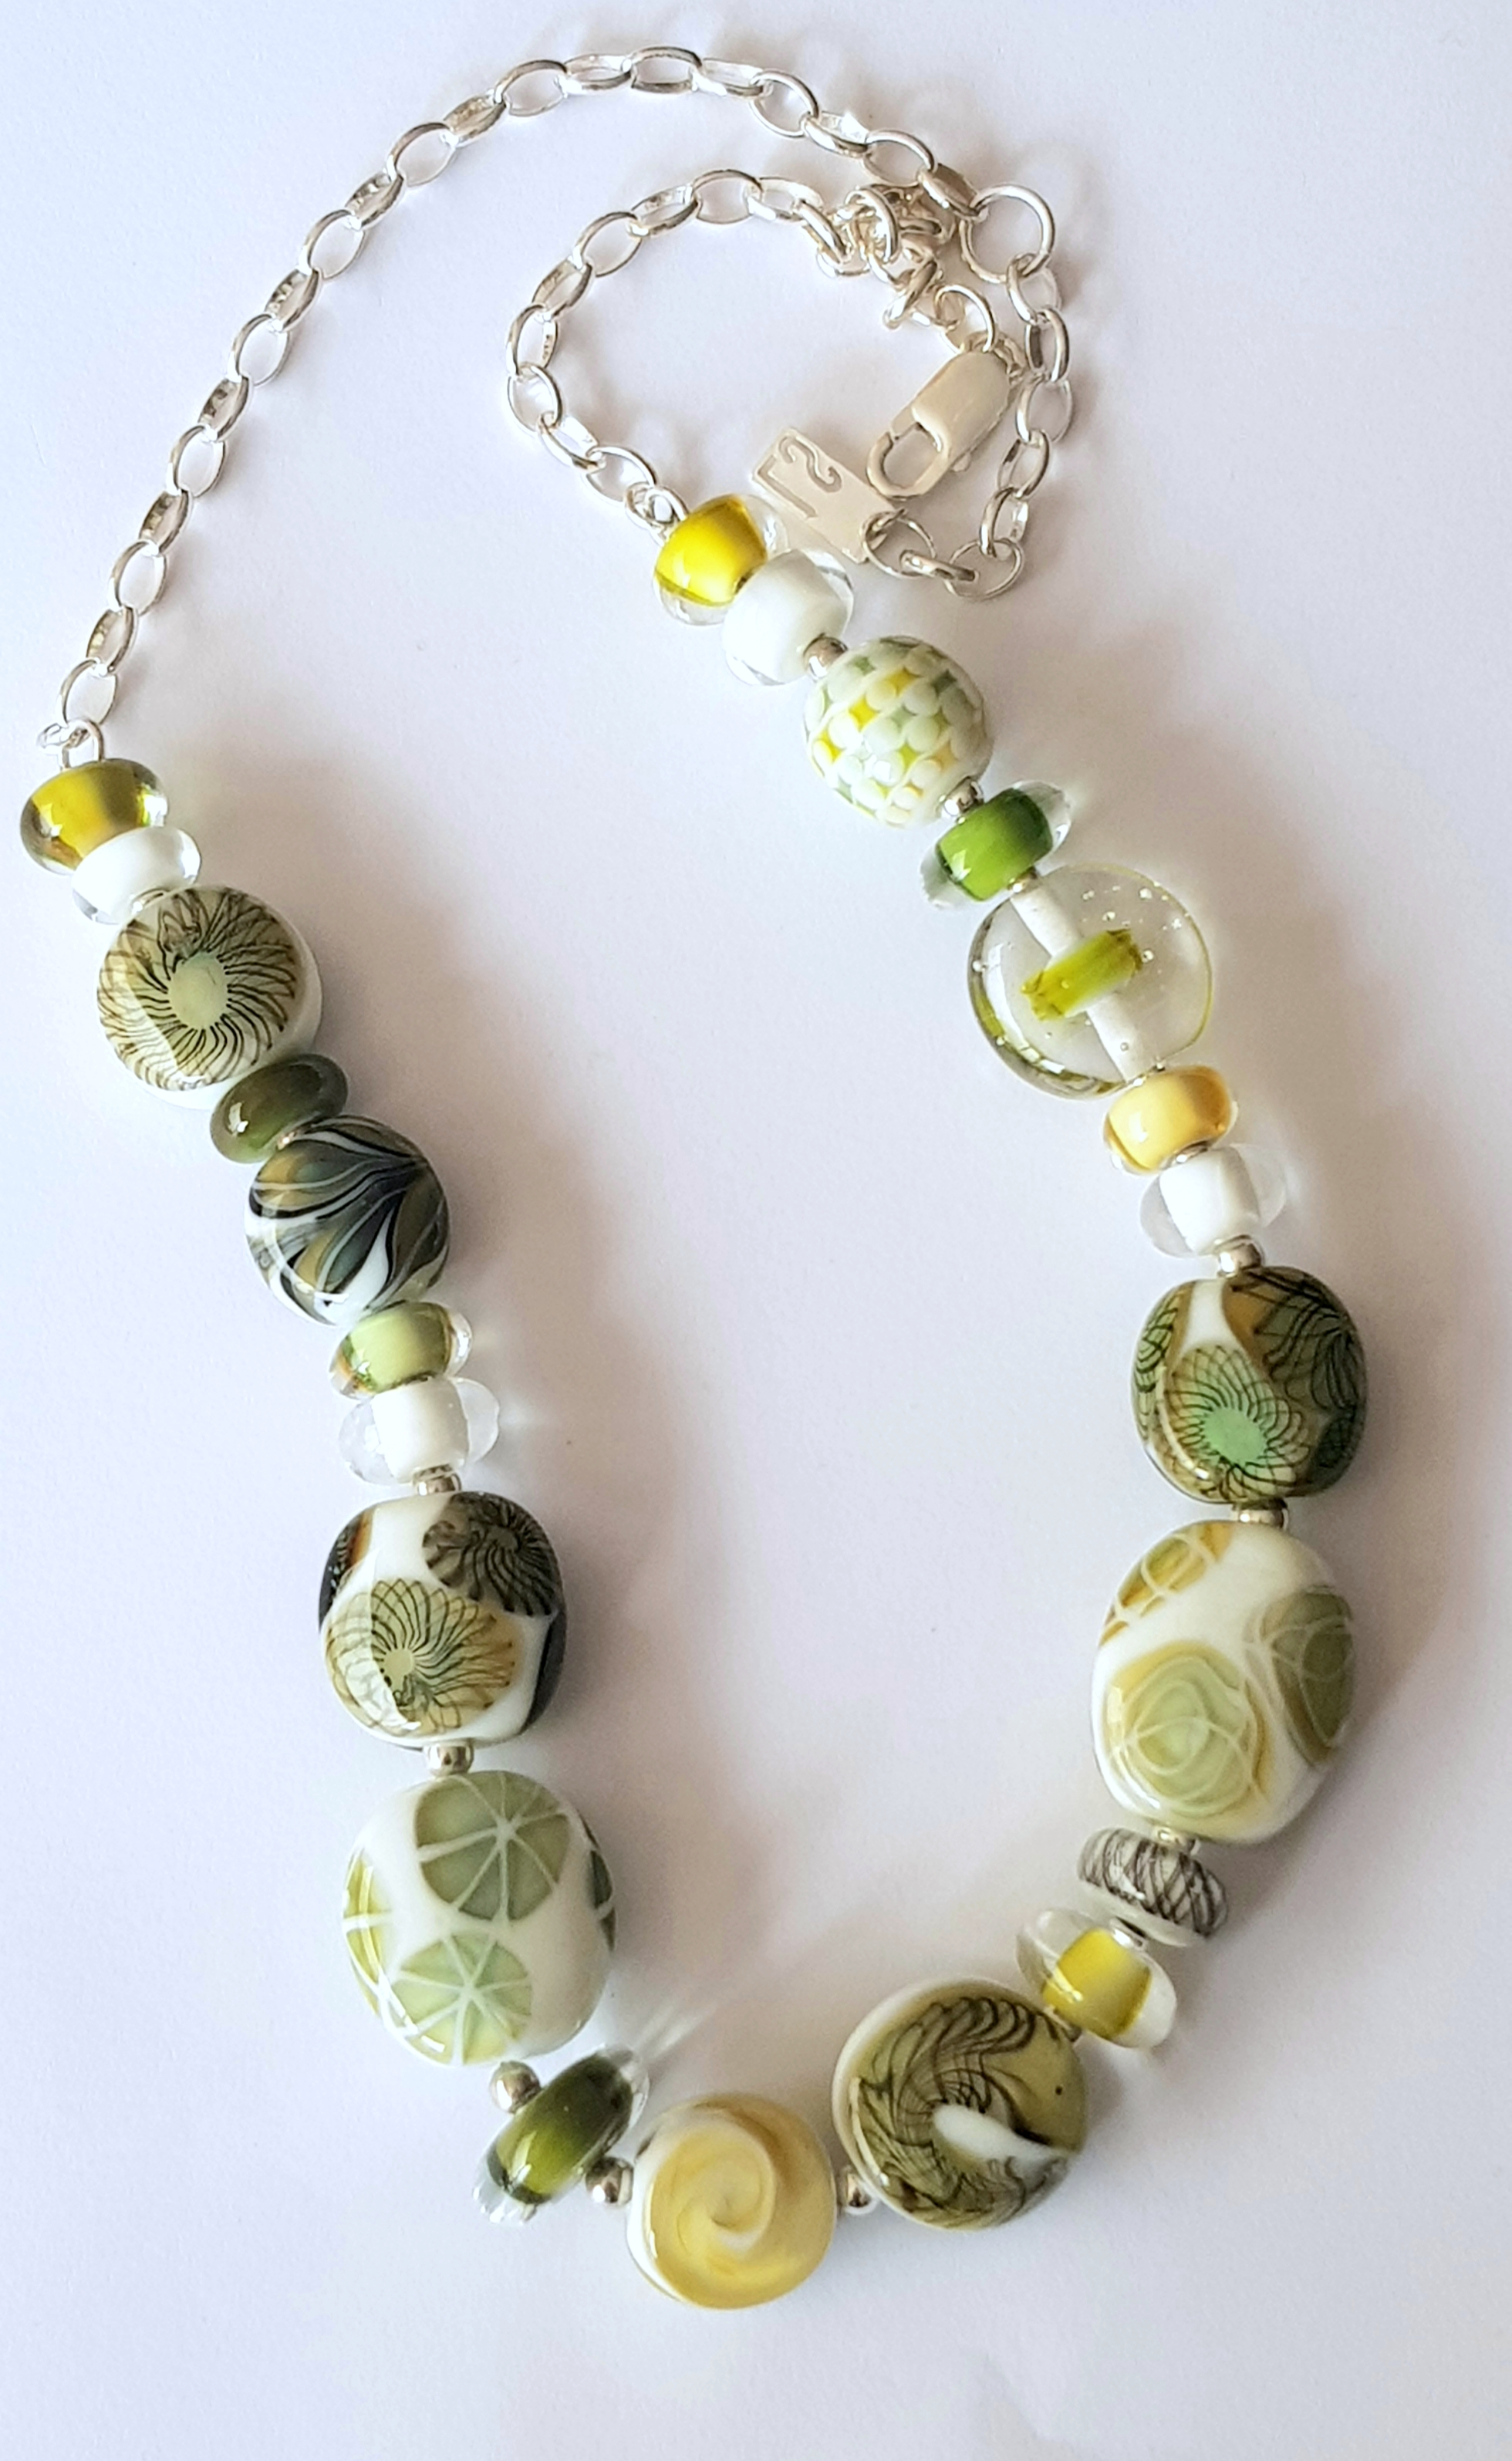 Garden necklace in greens and white by Lisa Simmons